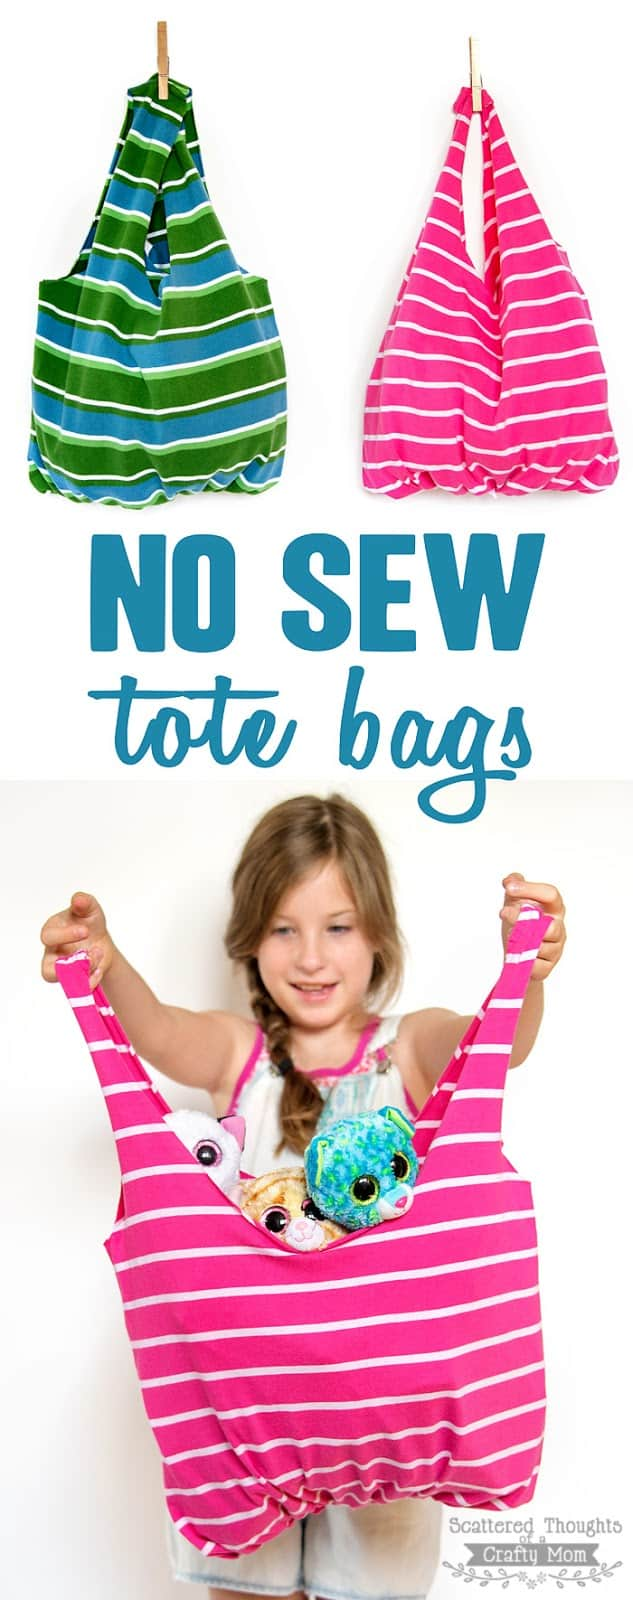 How to make a no sew tote bag.